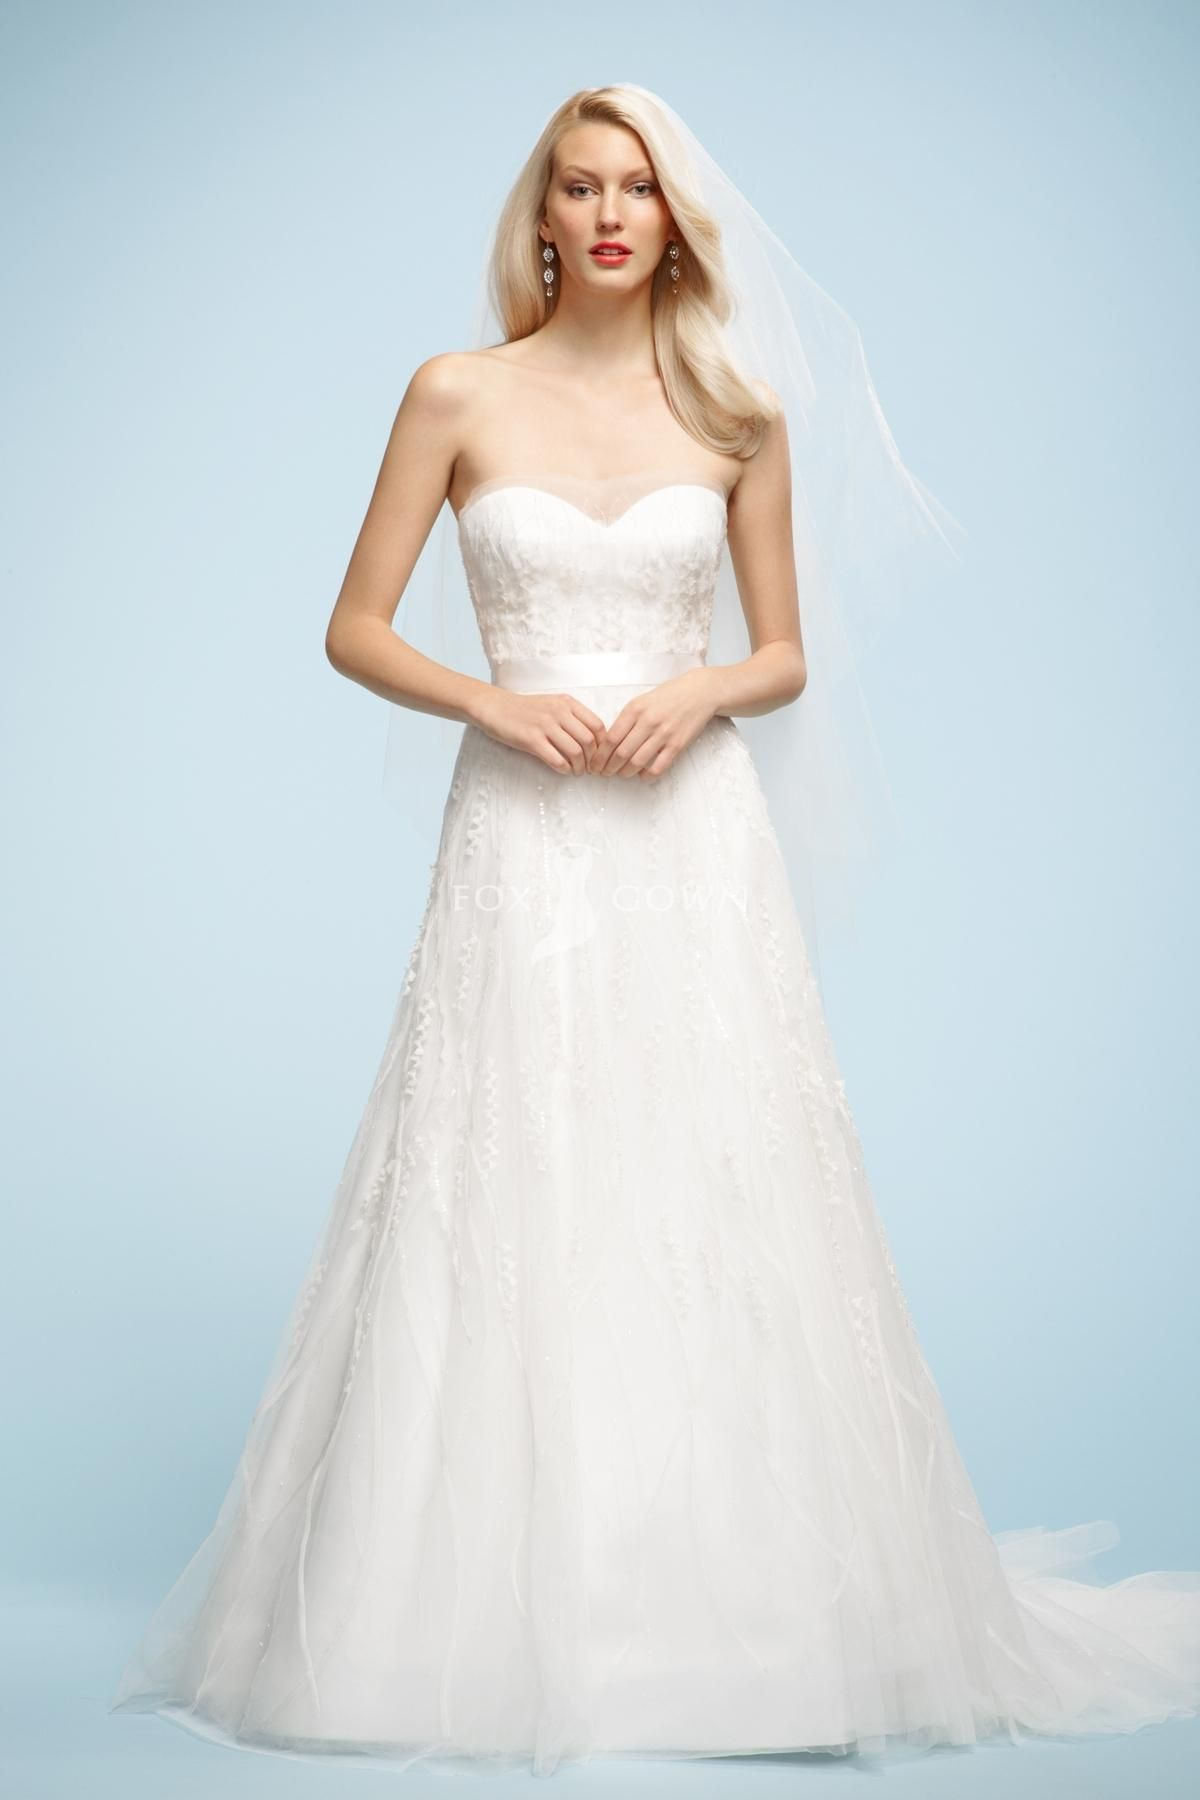 Sweetheart Wedding Dress With Sheer Tulle Overylady A Line Skirt Chapel Train 349